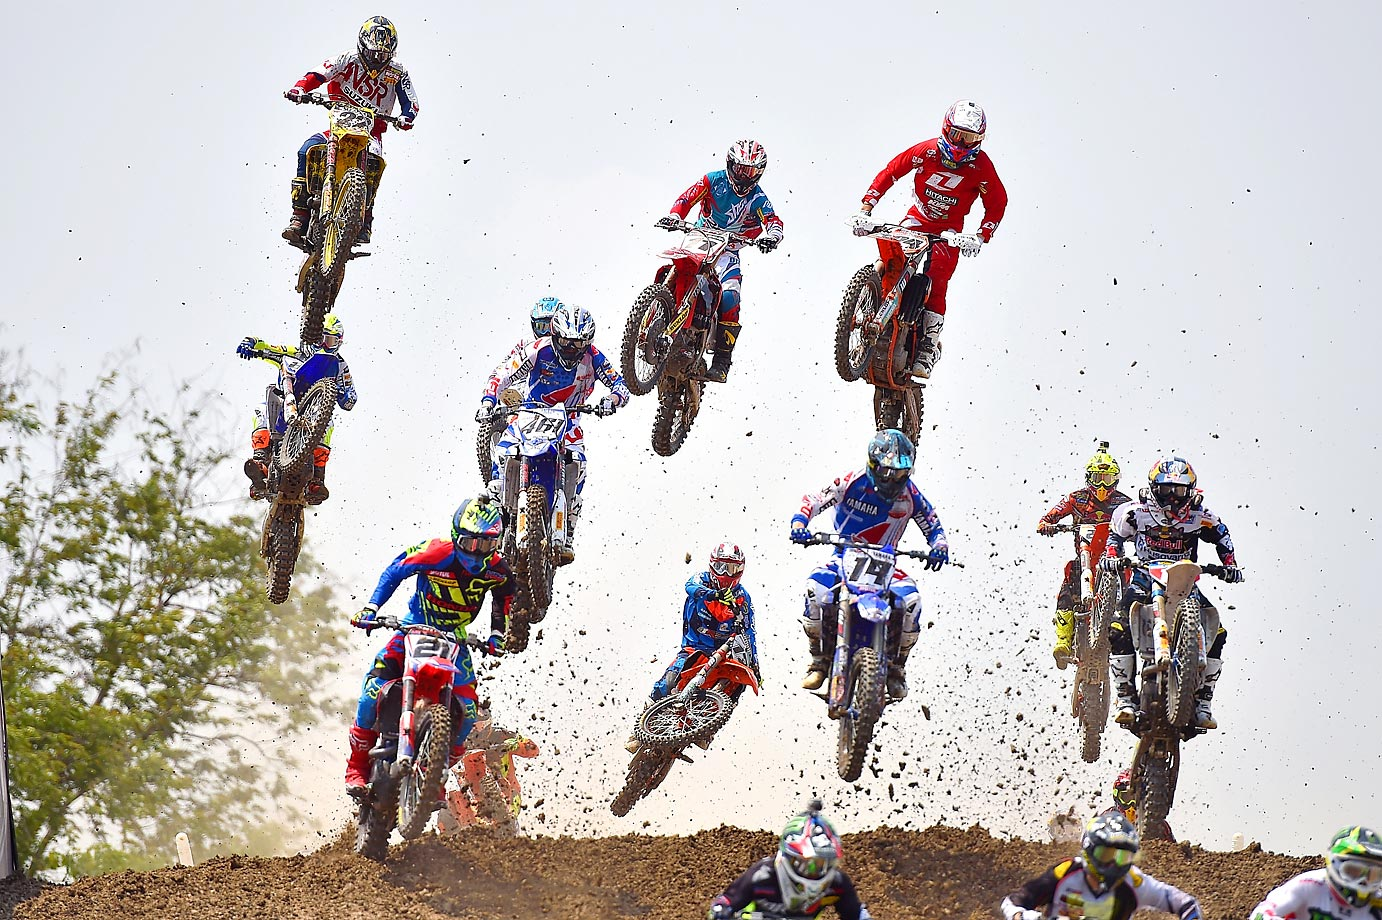 MXGP riders race at the MXGP in Bangkok.